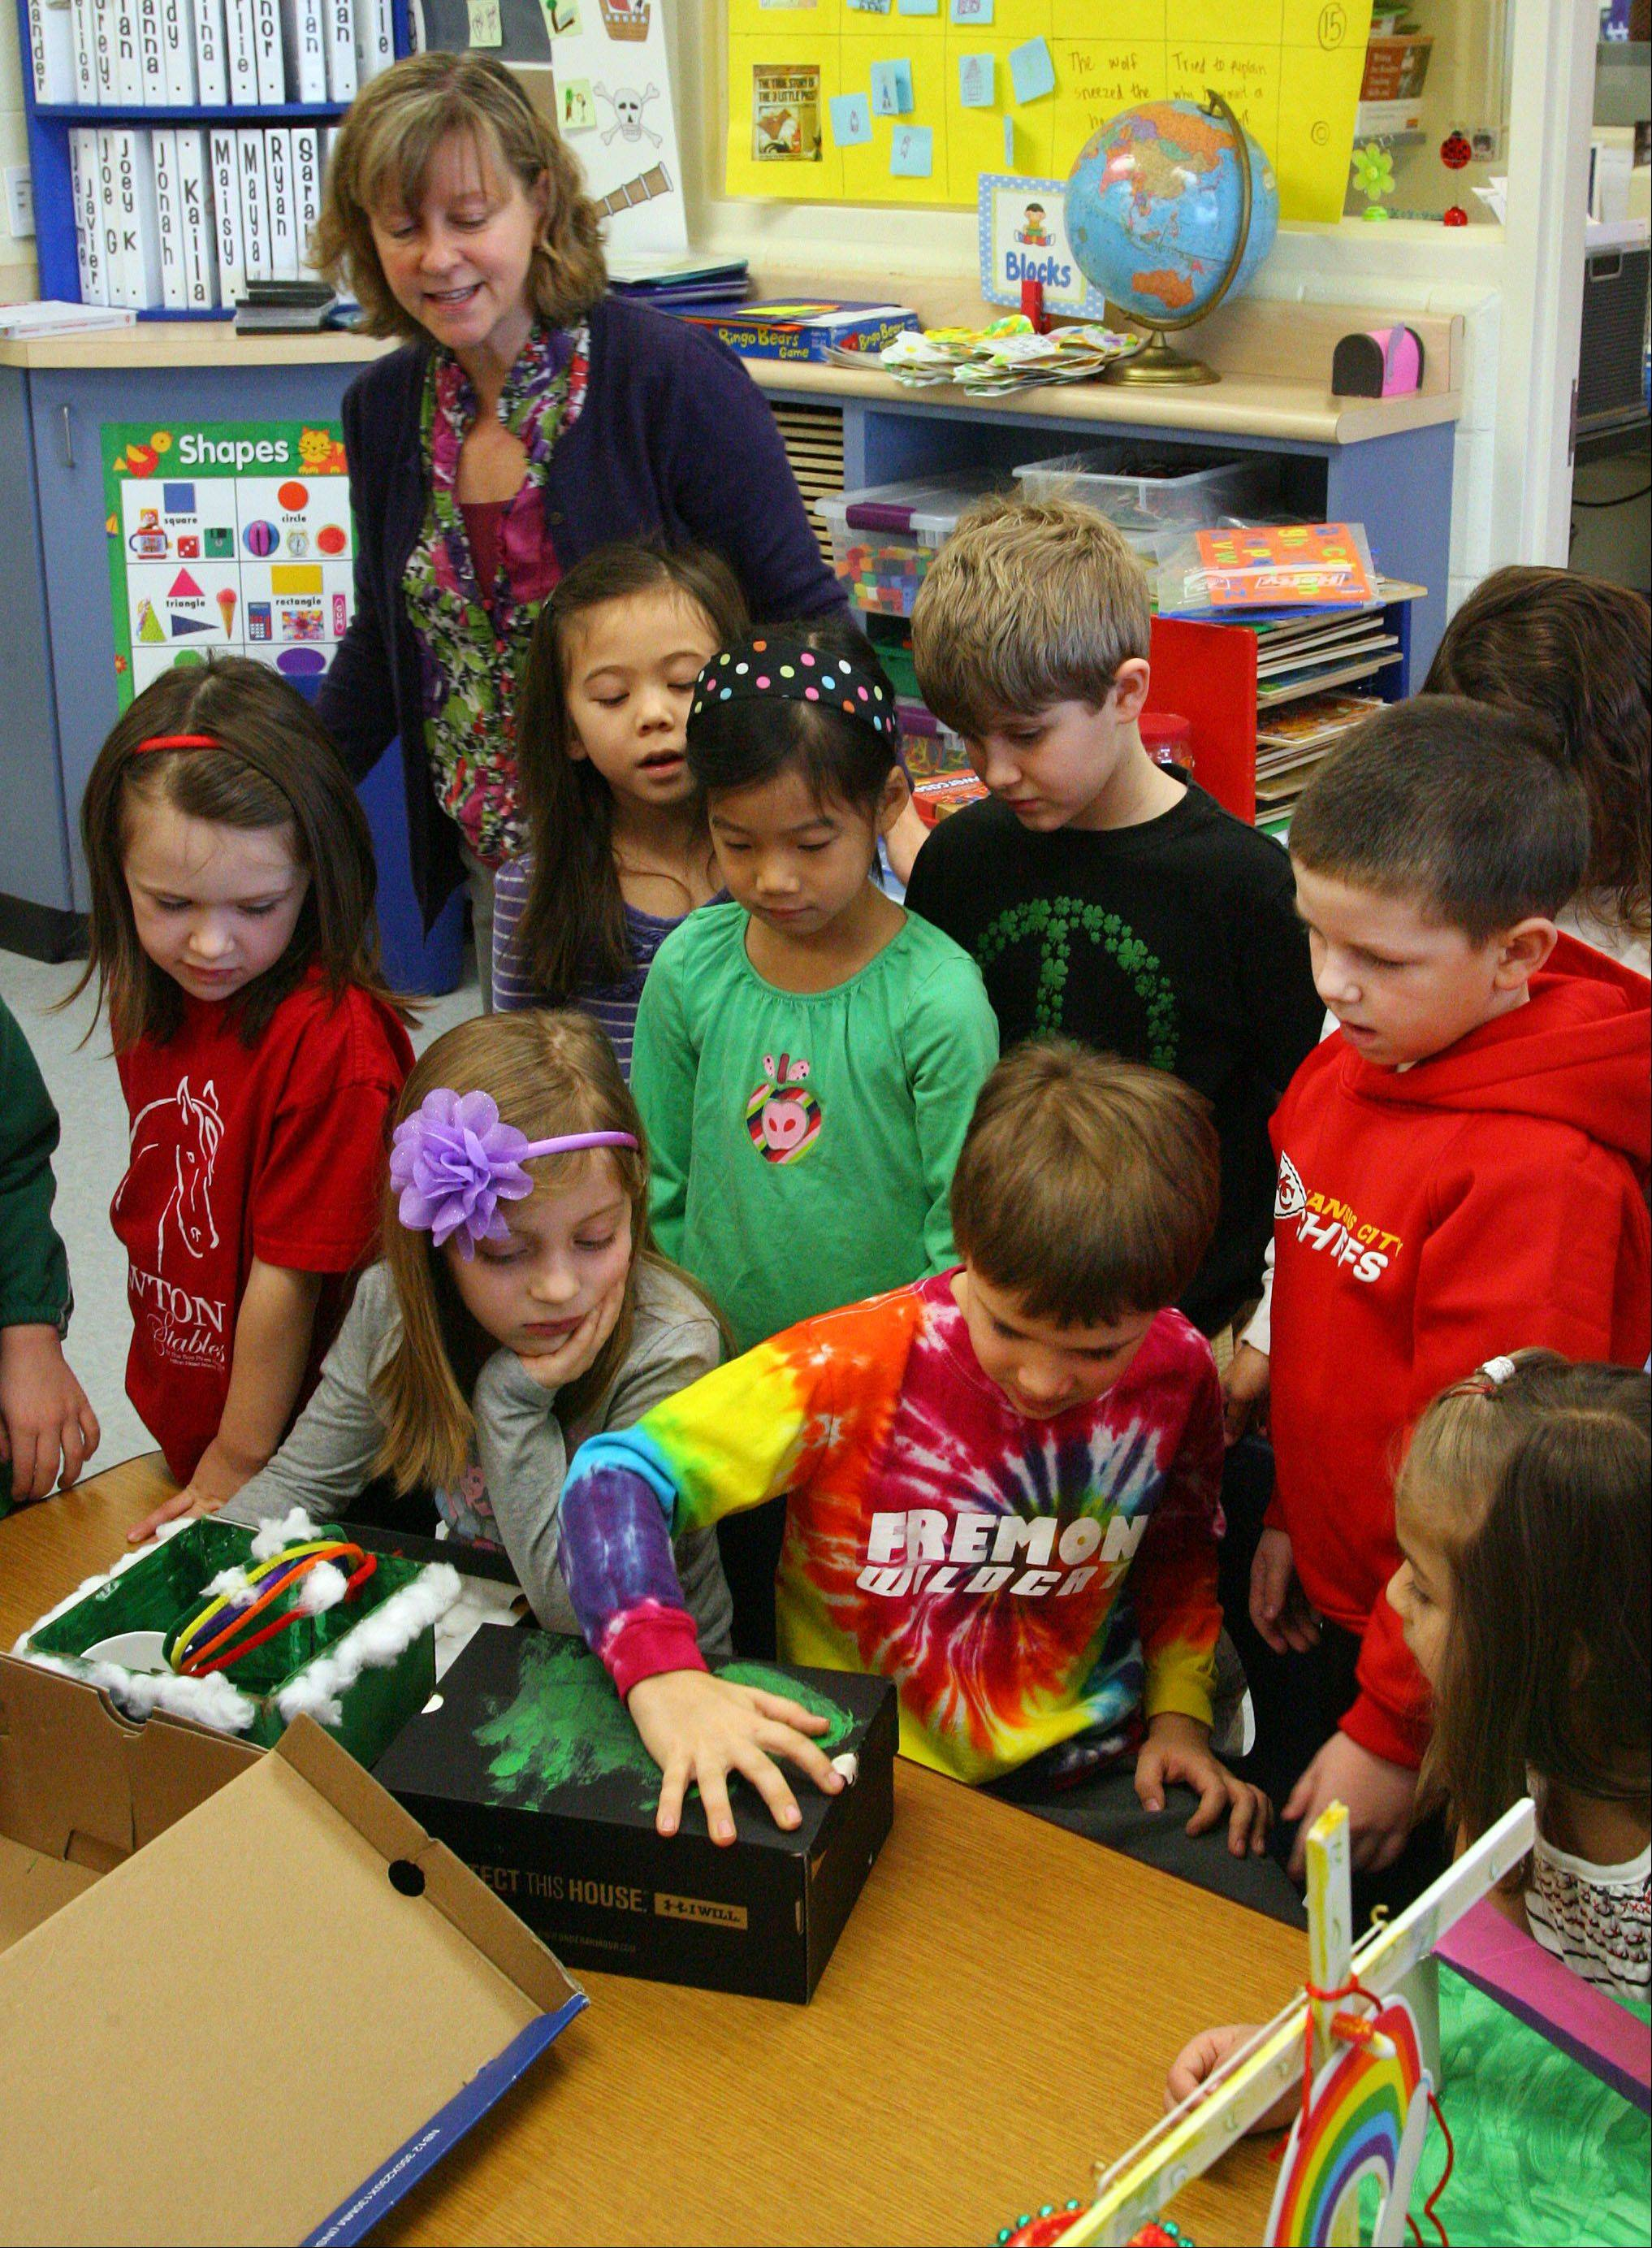 Fremont Elementary kindergartener Joey Kafka shows classmates how his leprechaun trap works during Wendy Domanico's class Thursday in Mundelein.